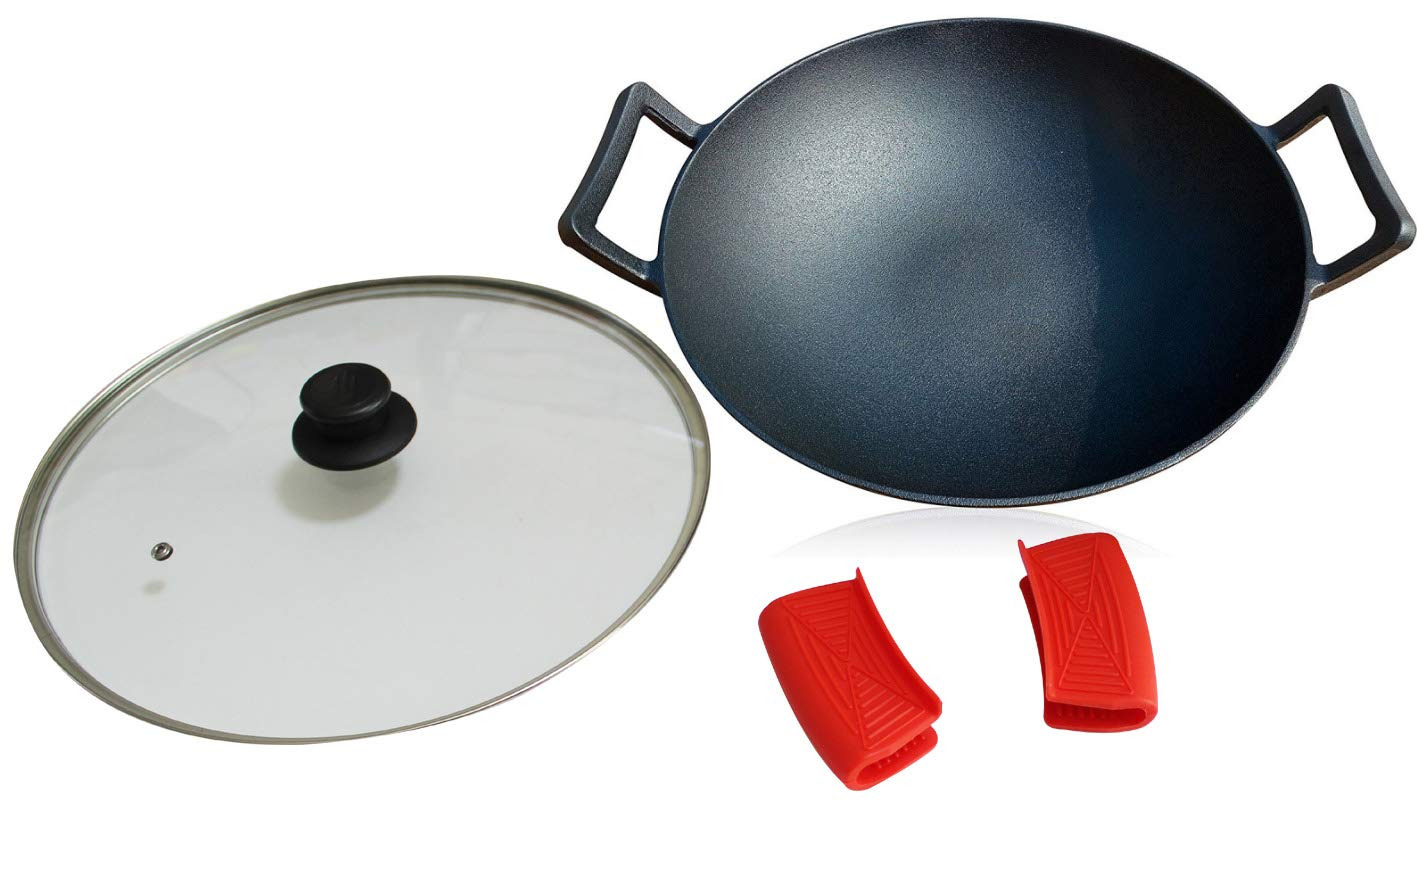 14-Inch Cast Iron Wok Set (Pre-Seasoned), Glass Lid & Silicone Hot Handle Holders